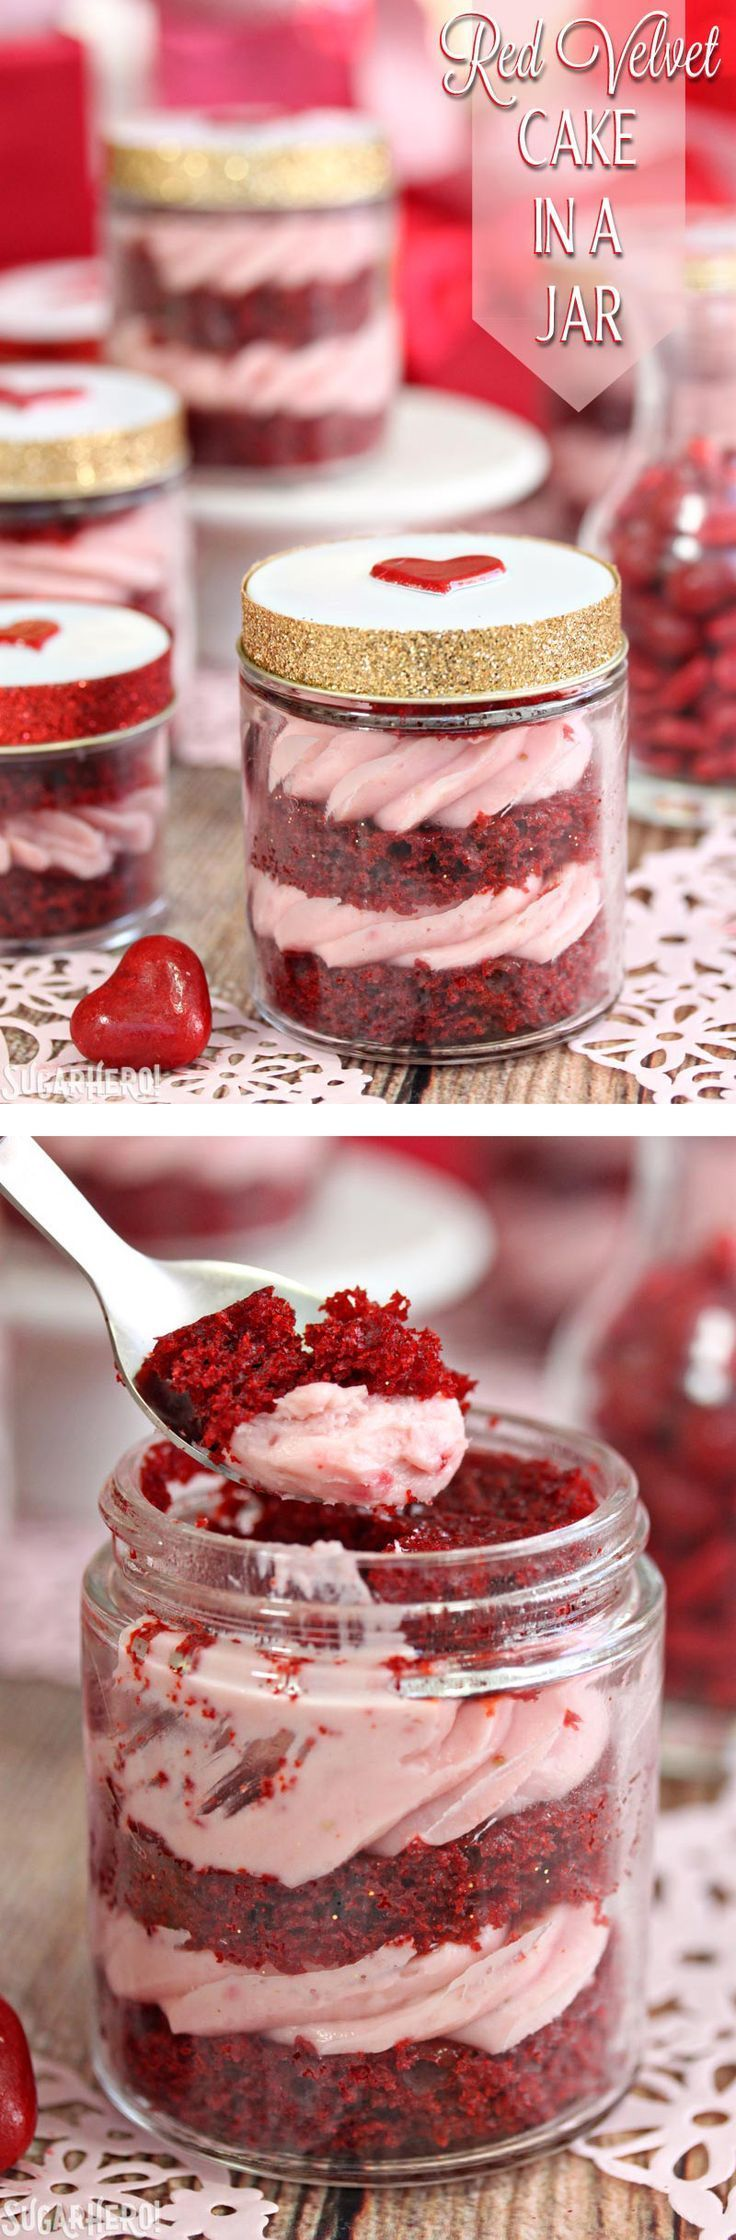 Red Velvet Cake In A Jar- the best way to enjoy cake! It's cute, portable, and delicious. This recipe gives red velvet cake a twist by using strawberry rose cream cheese! | From http://SugarHero.com